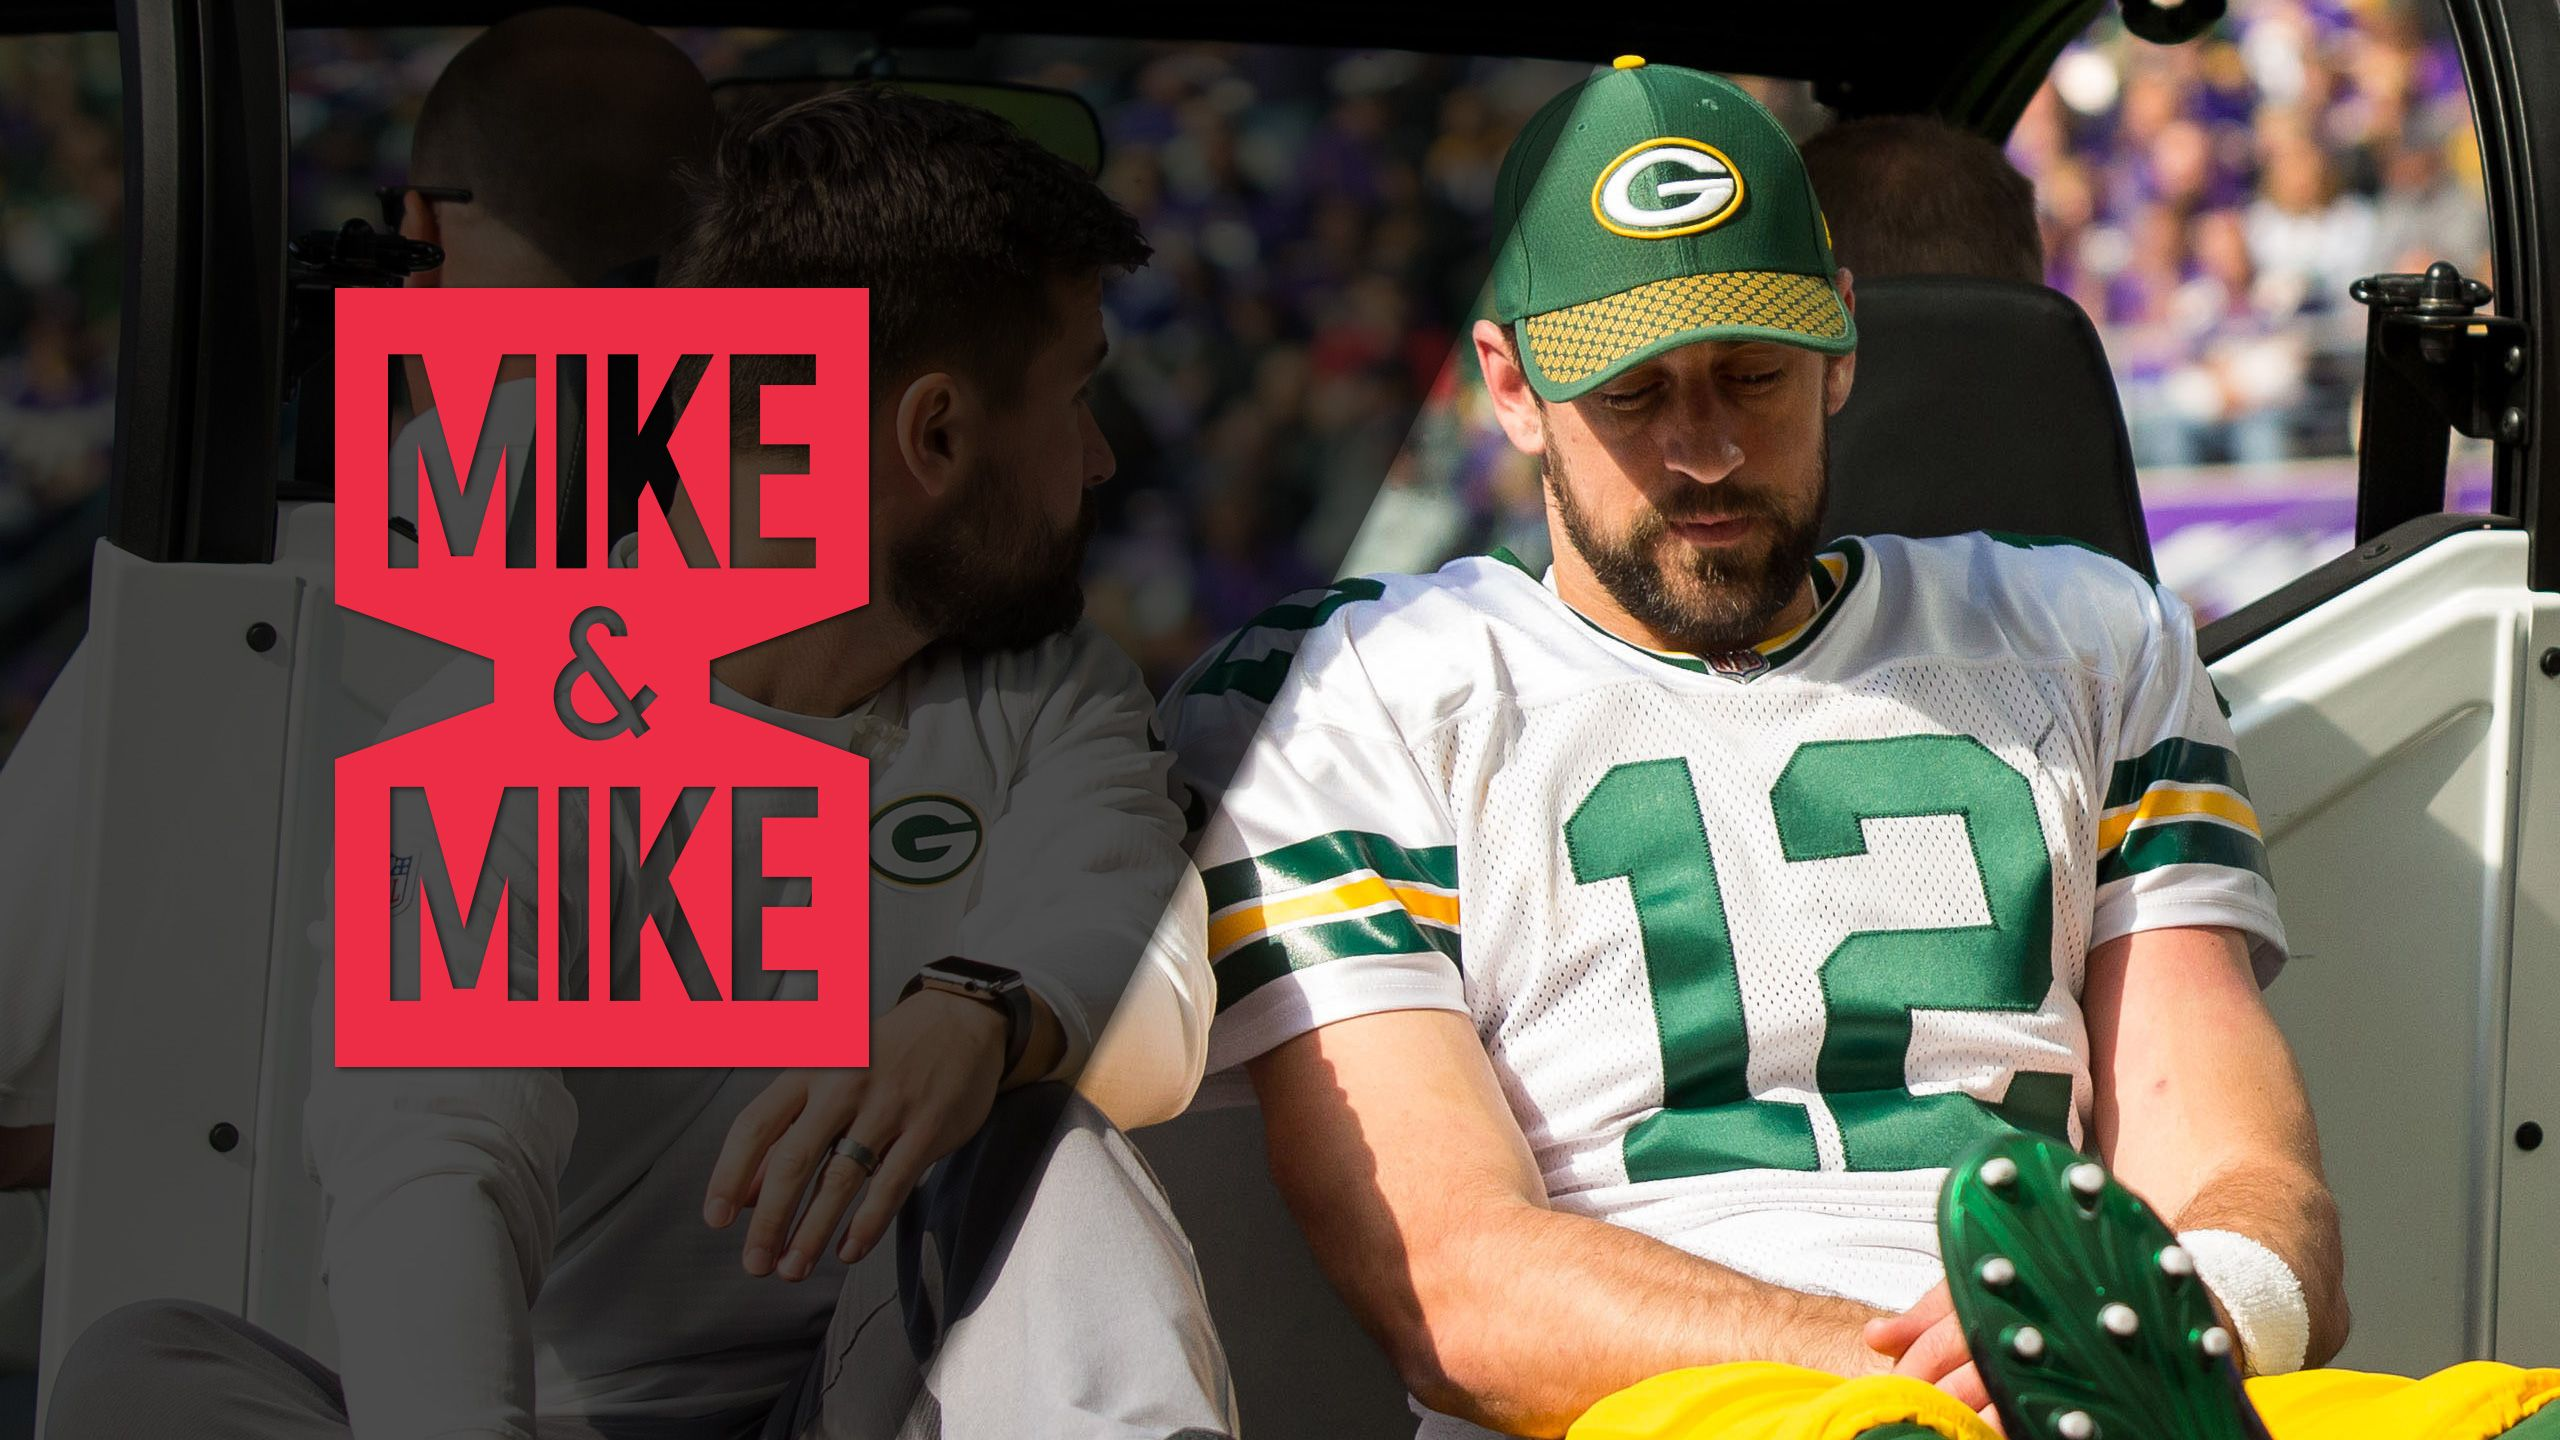 Mike & Mike Presented by Progressive